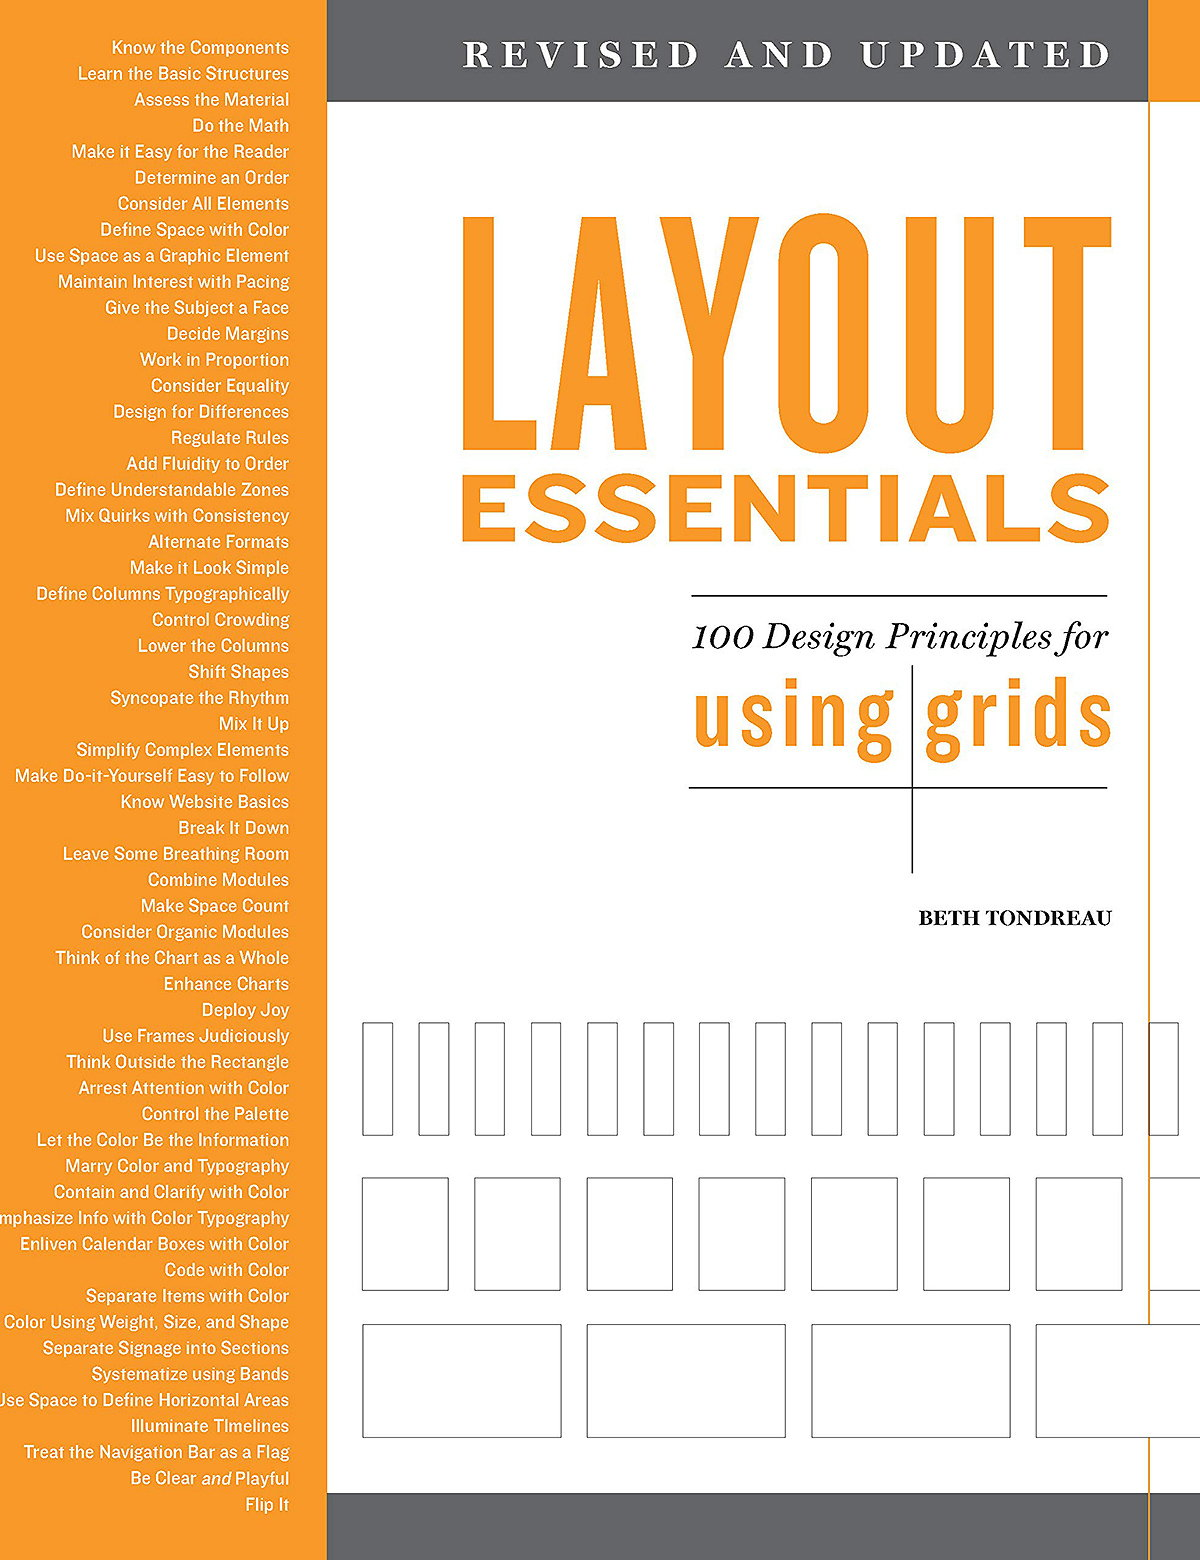 Layout Essentials - 100 Design Principles for Using Grids